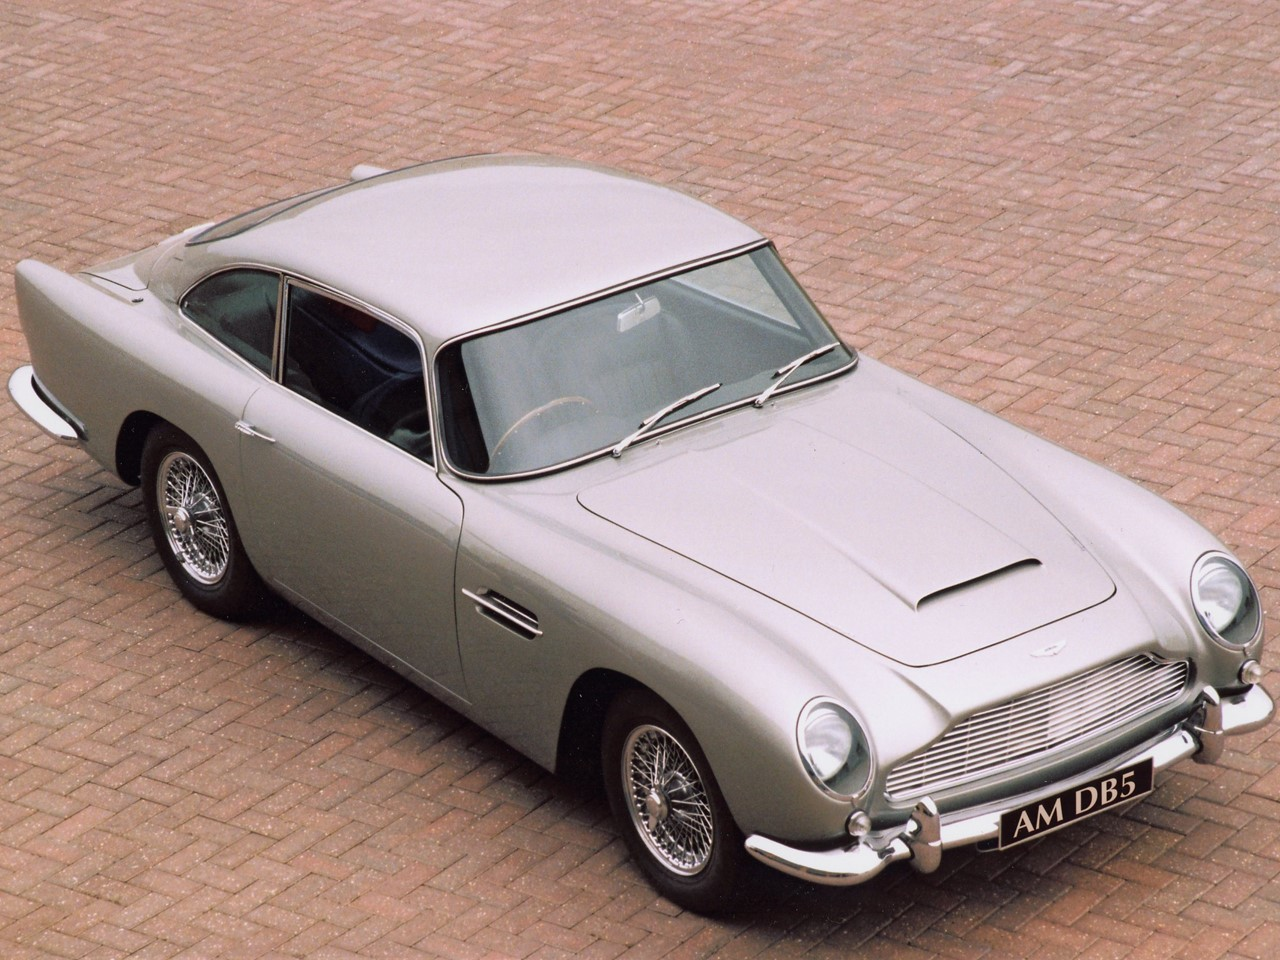 aston martin db5 the ultimate icon notoriousluxury. Black Bedroom Furniture Sets. Home Design Ideas